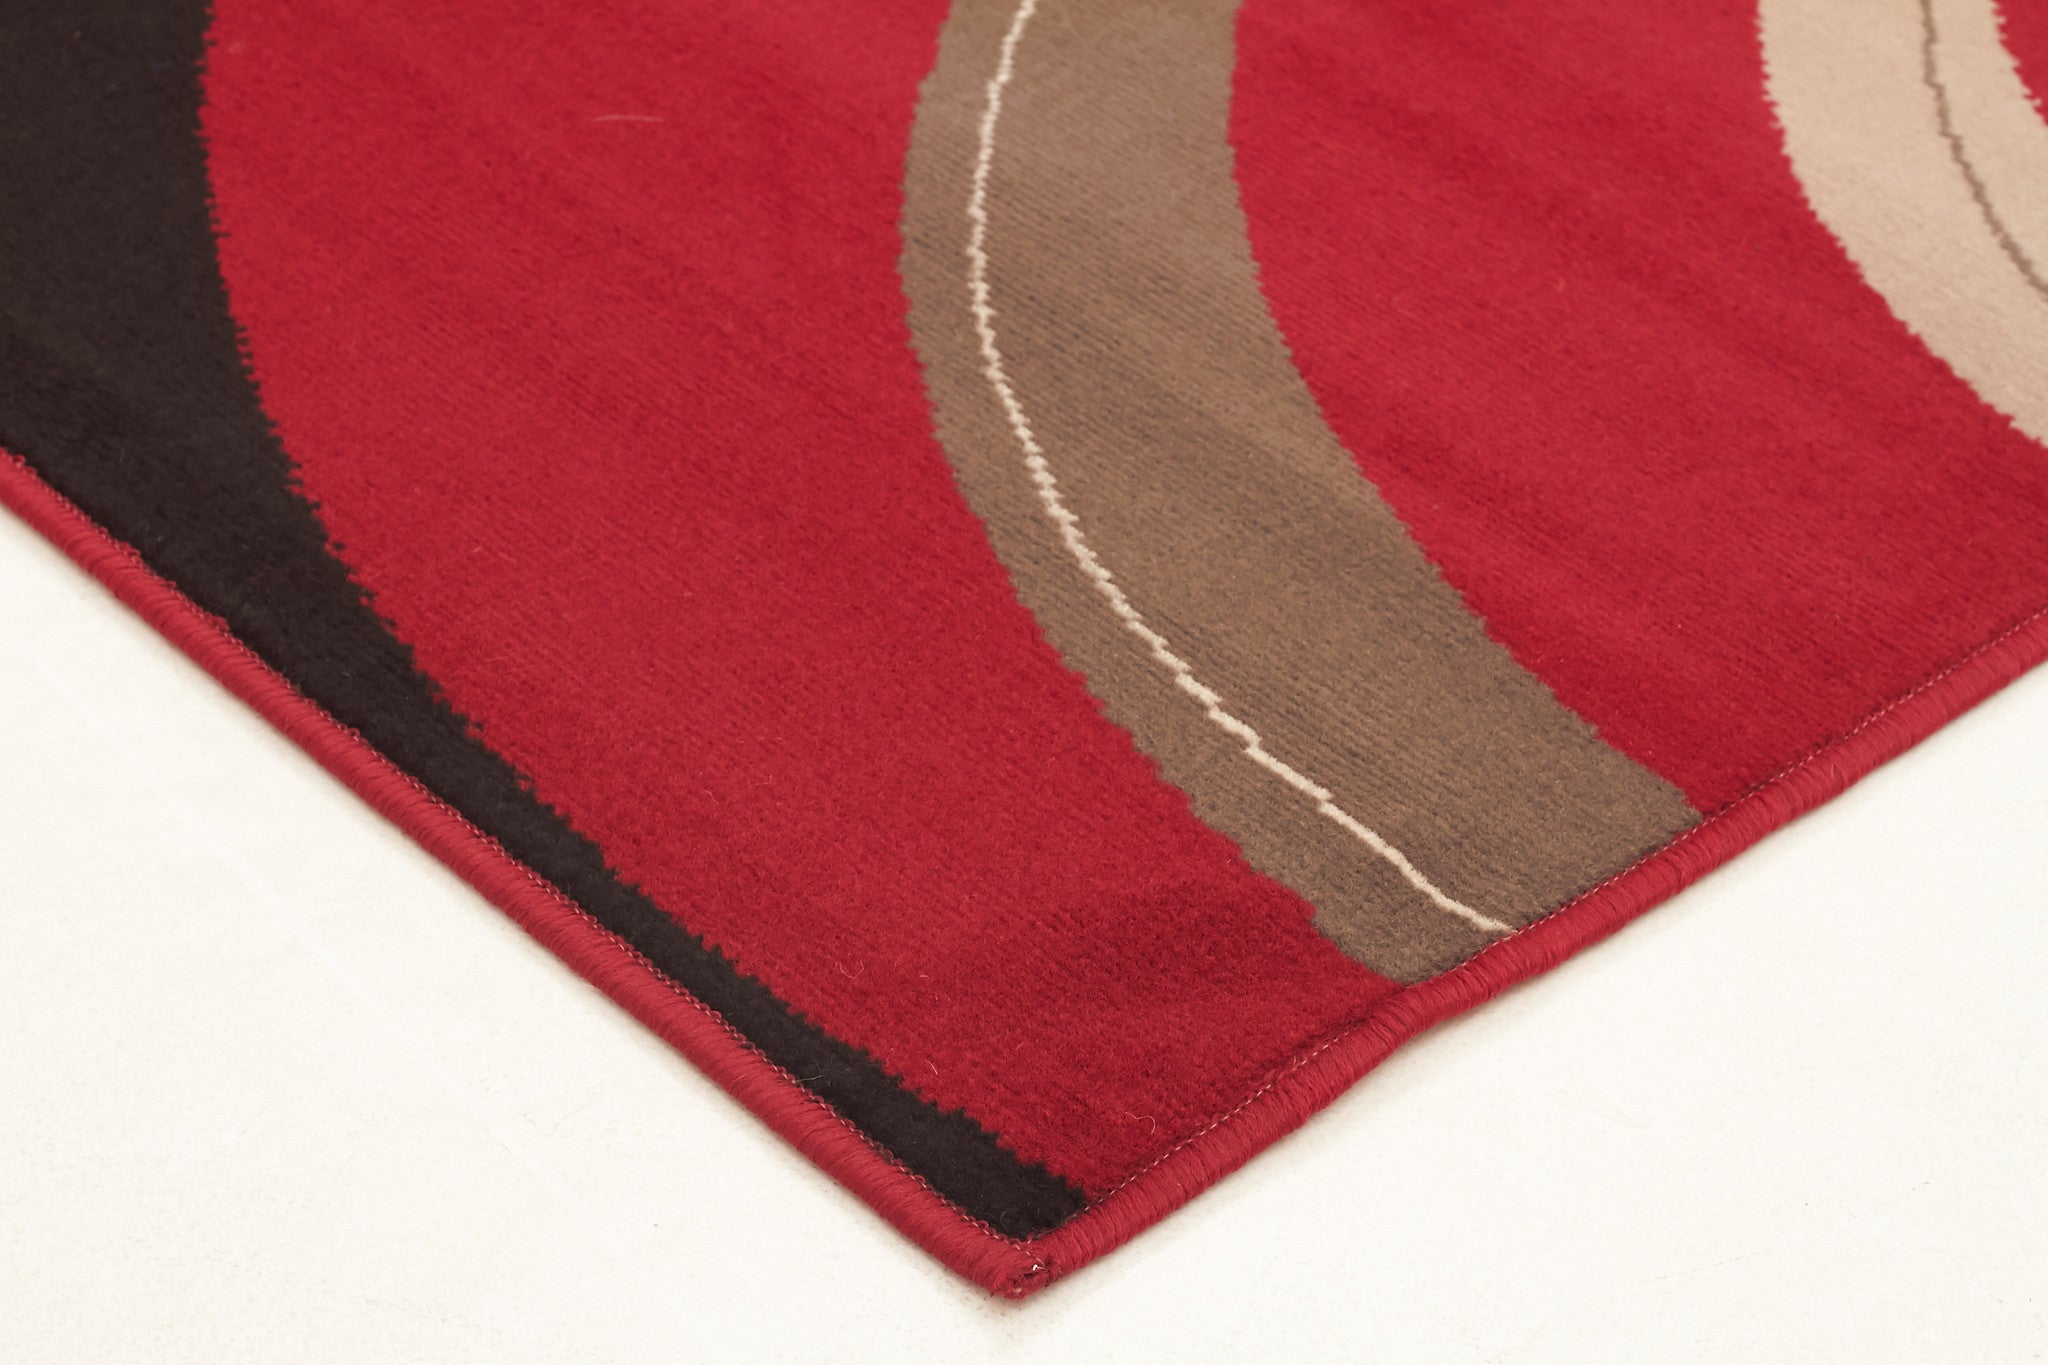 Silver BCF 1246 W33 Rug - Red Black White